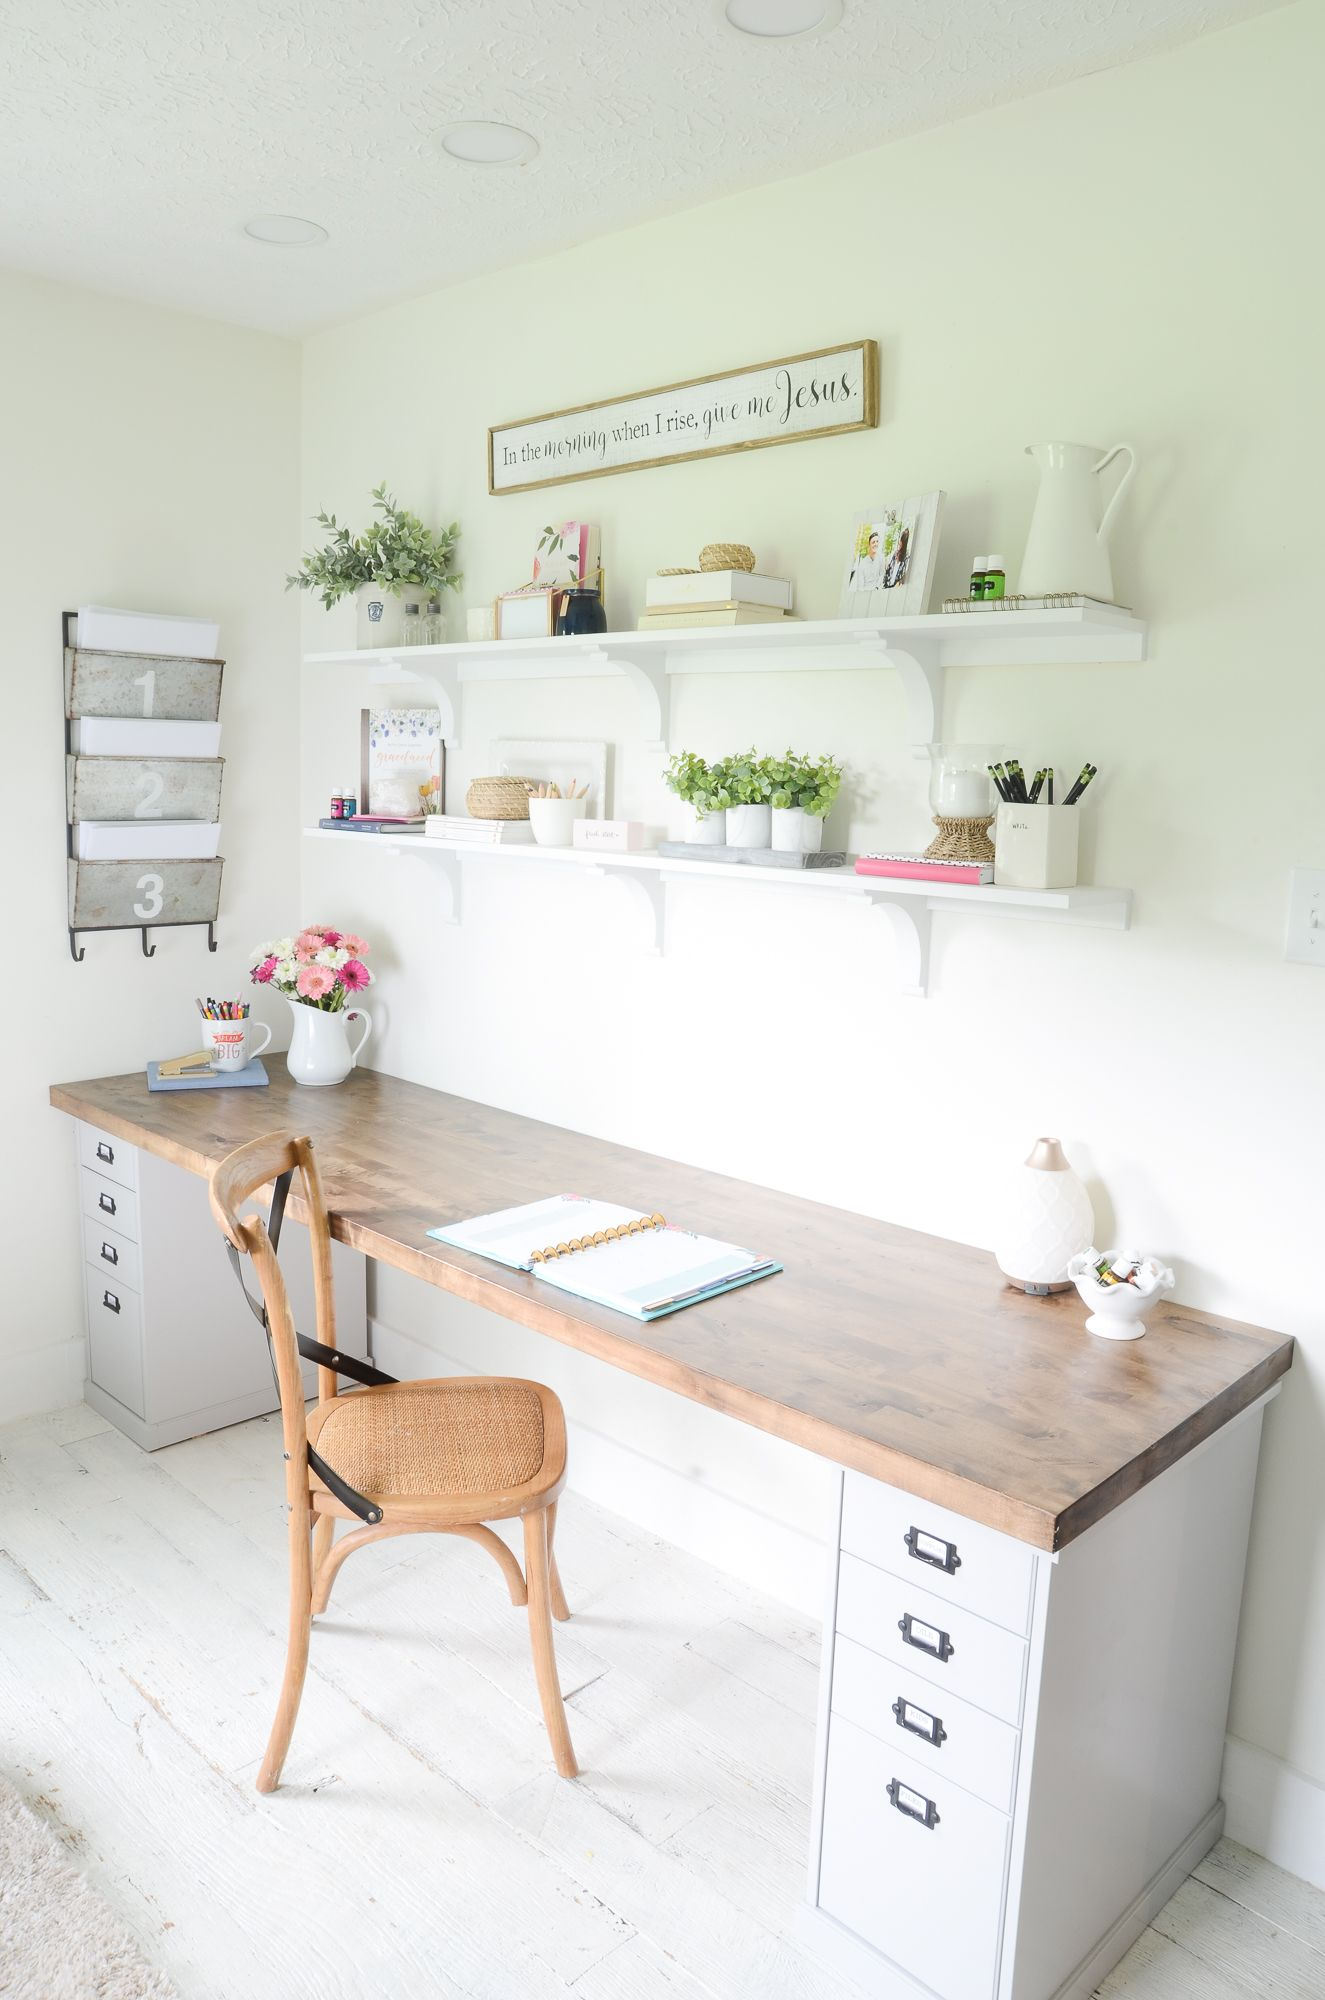 Diy Butcher Block Desk For My Home Office Beneath My Heart Butcher Block Desk Home Office Desks Guest Room Office